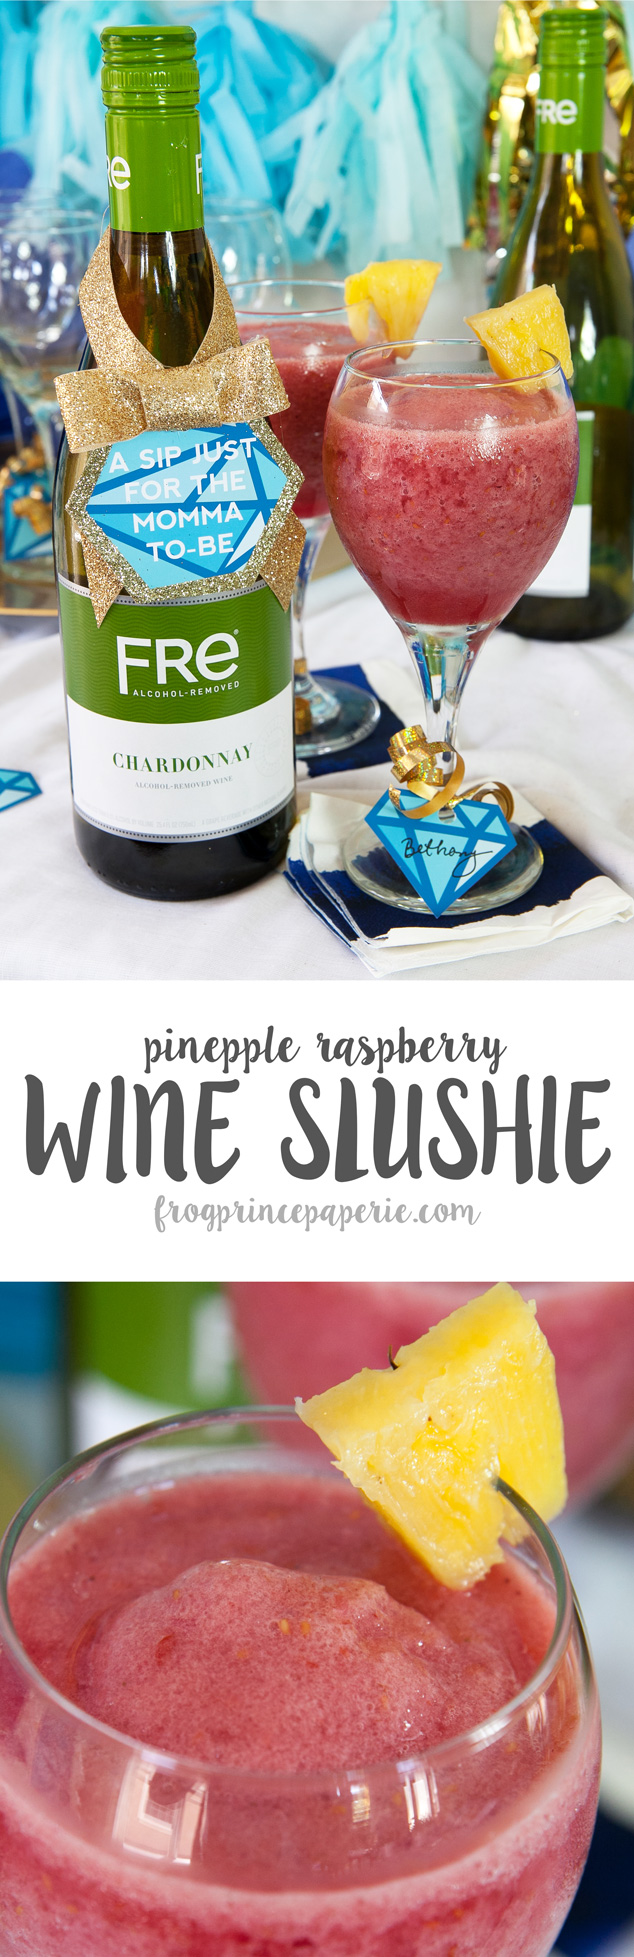 wine-slushie-recipe